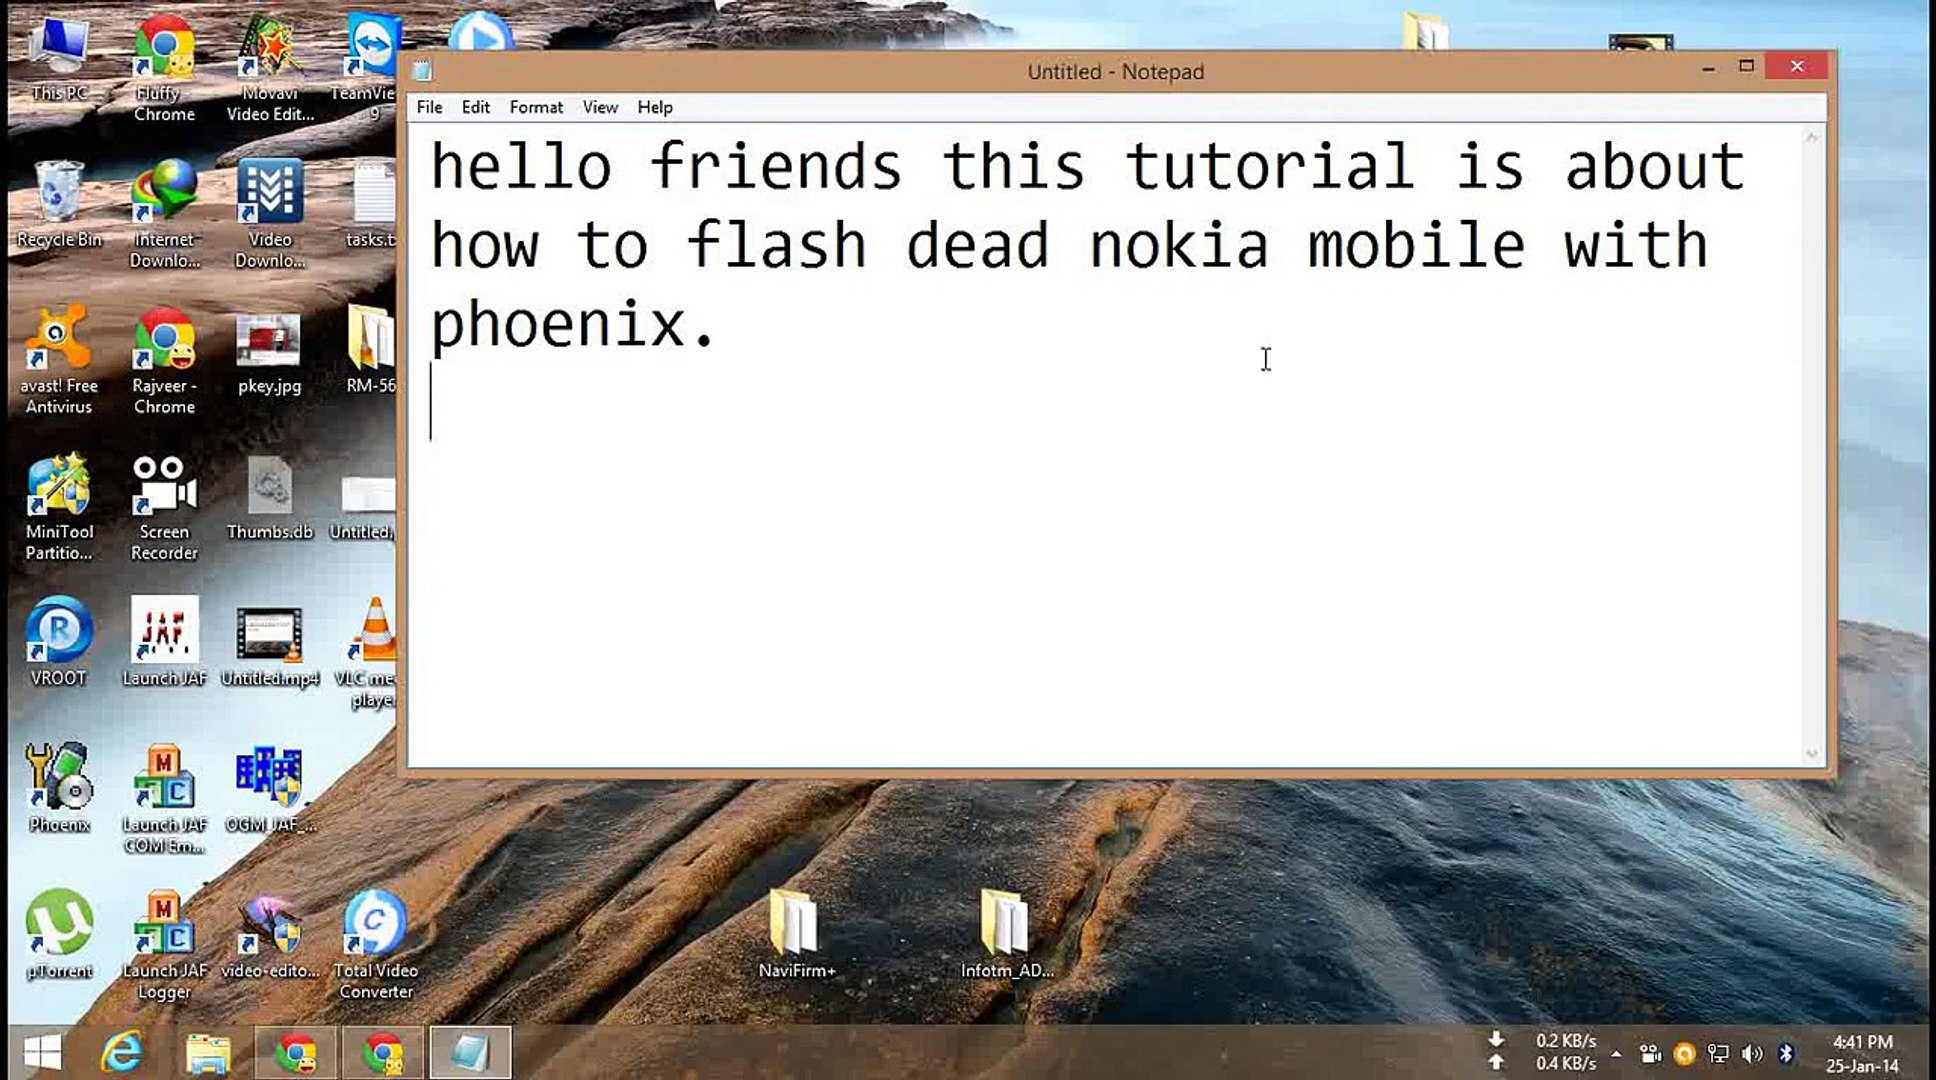 How to flash dead nokia mobile with phoenix by Pawneshwer Gupta